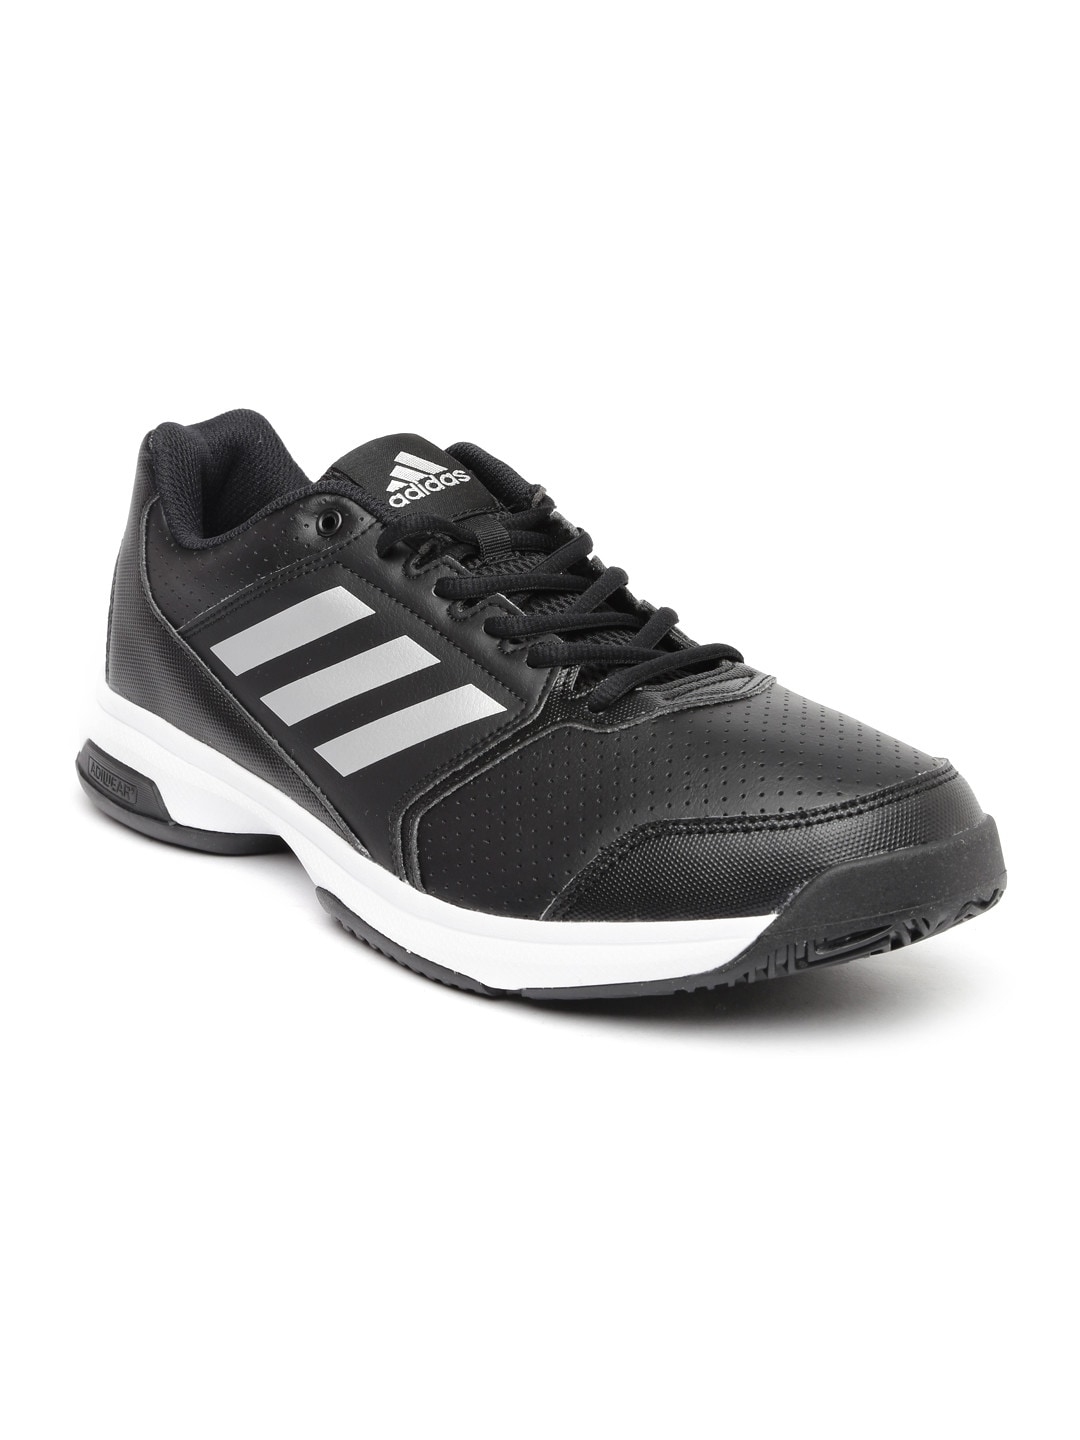 buy popular 980ee 47d11 Adidas ba9083 Men Black Adizero Attack Tennis Shoes- Price in India